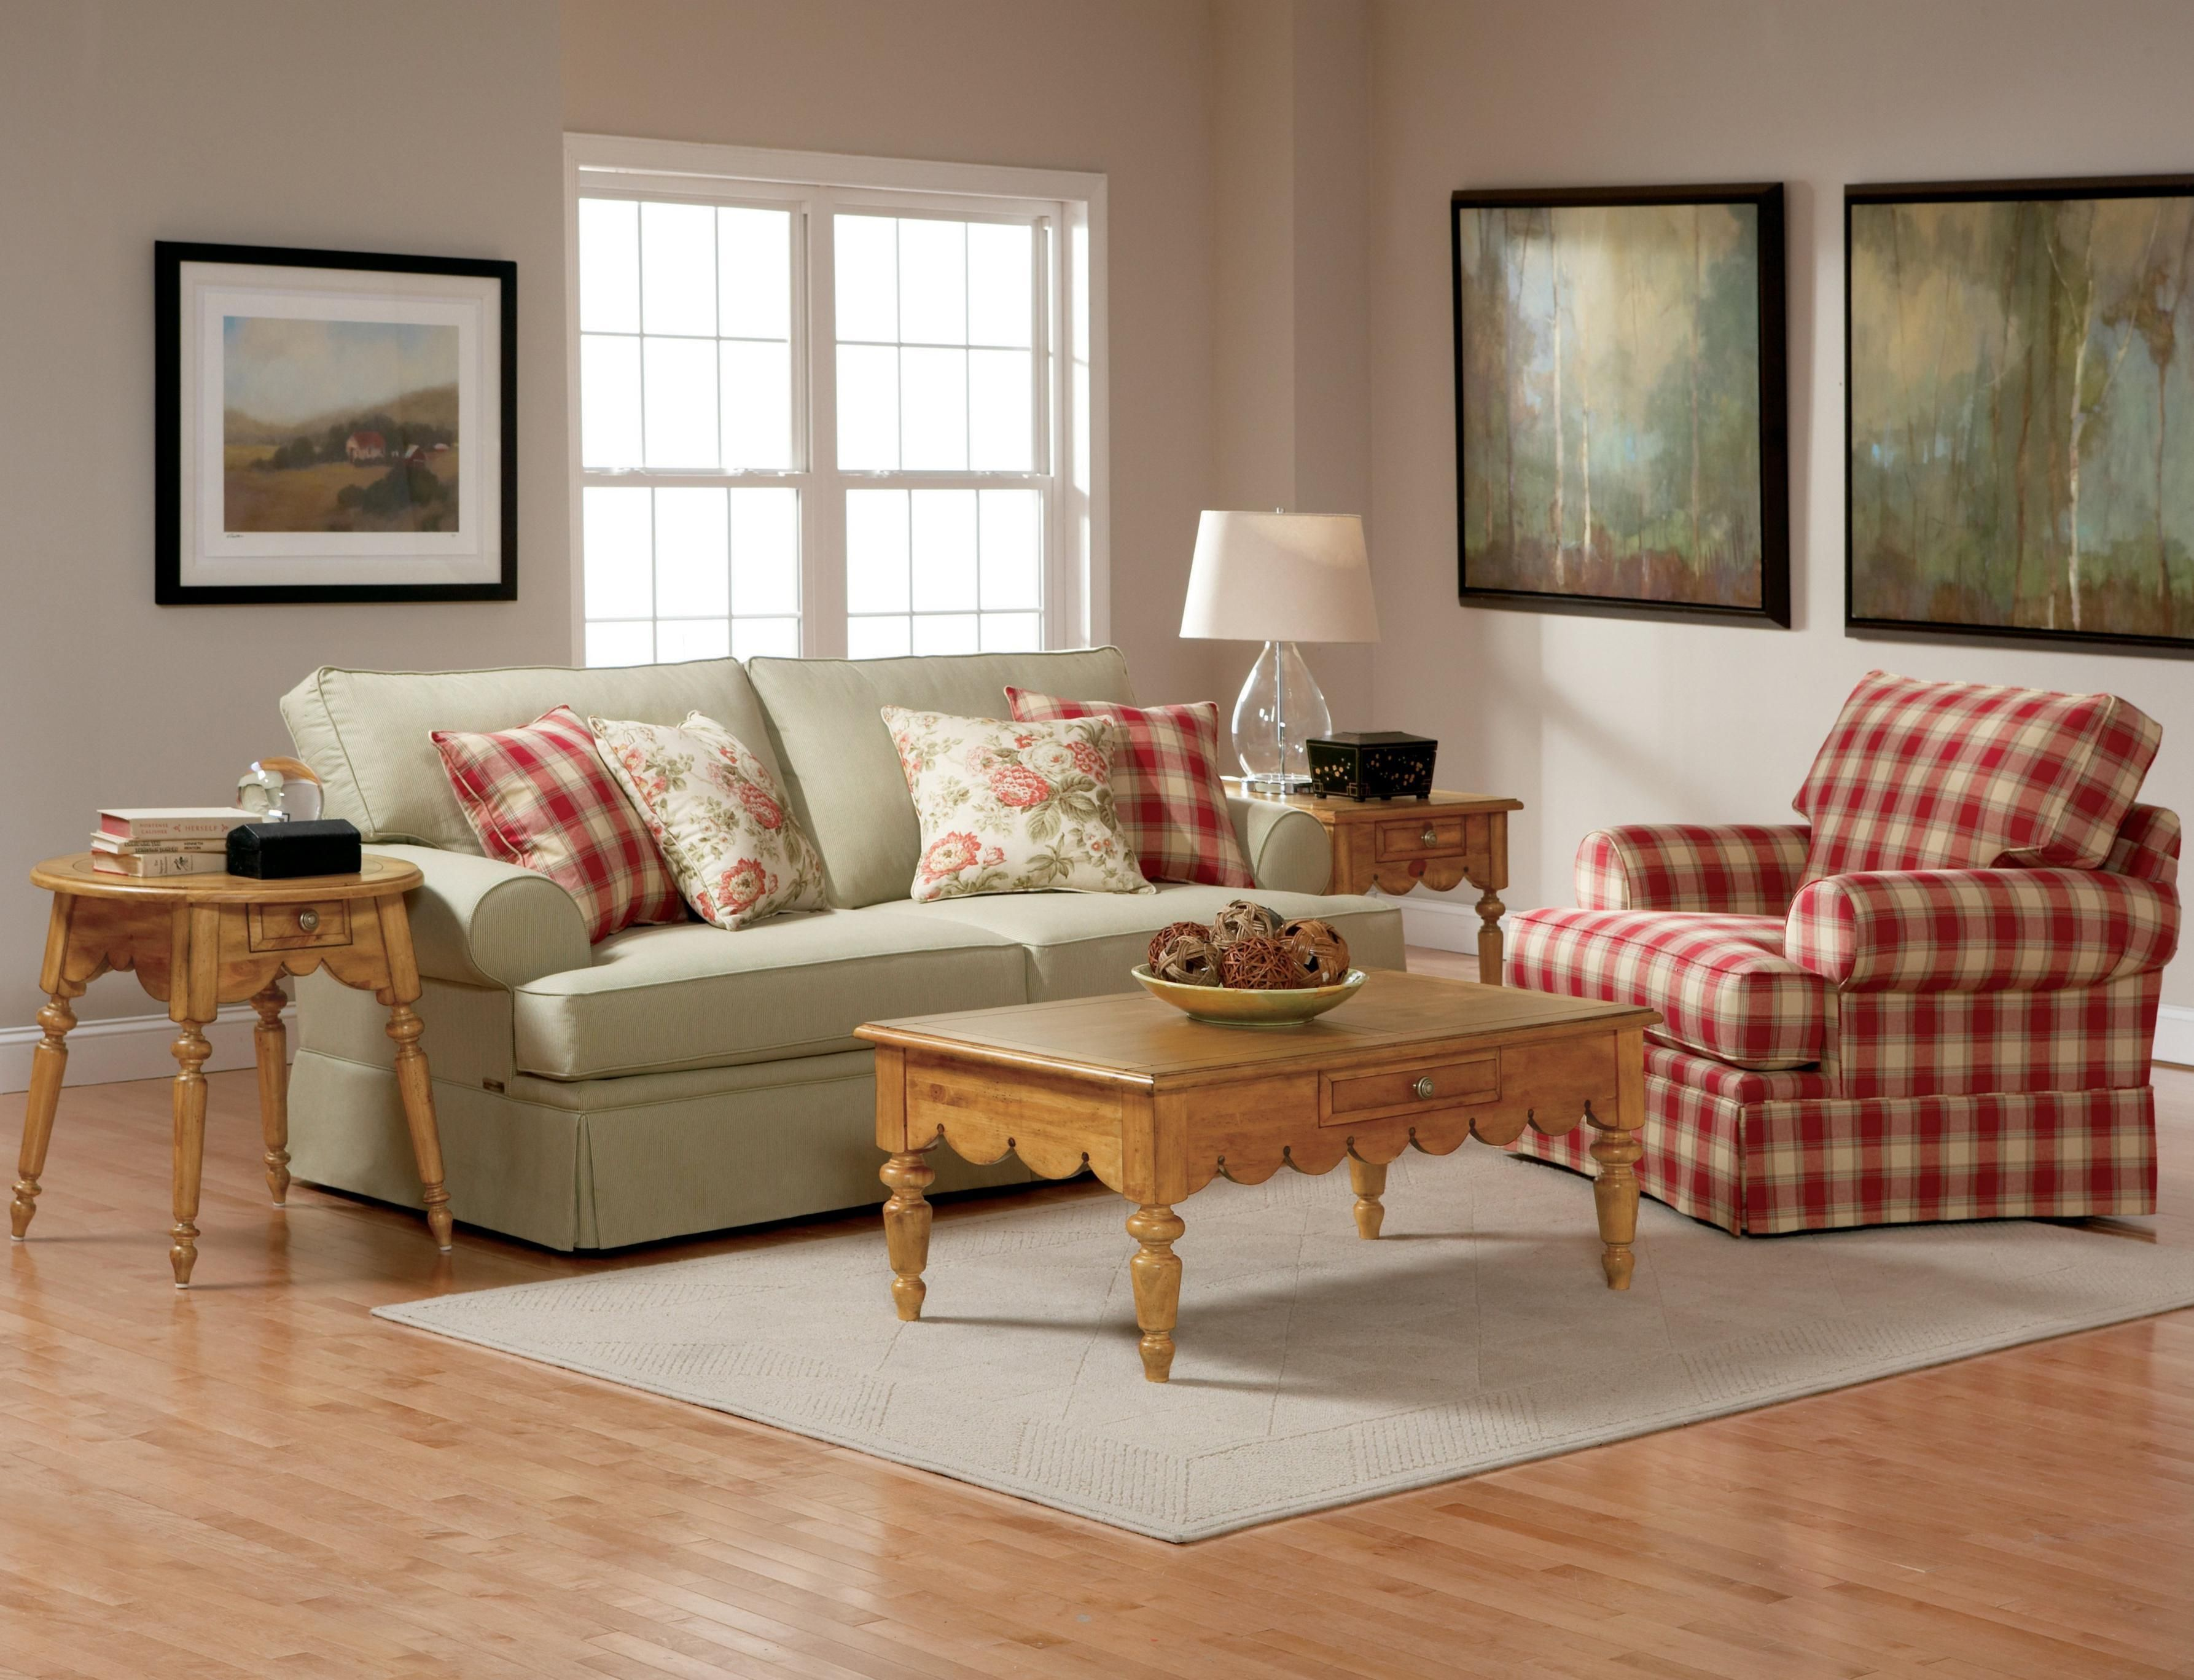 Best Broyhill Broyhill Furniture Affordable Living Room 400 x 300